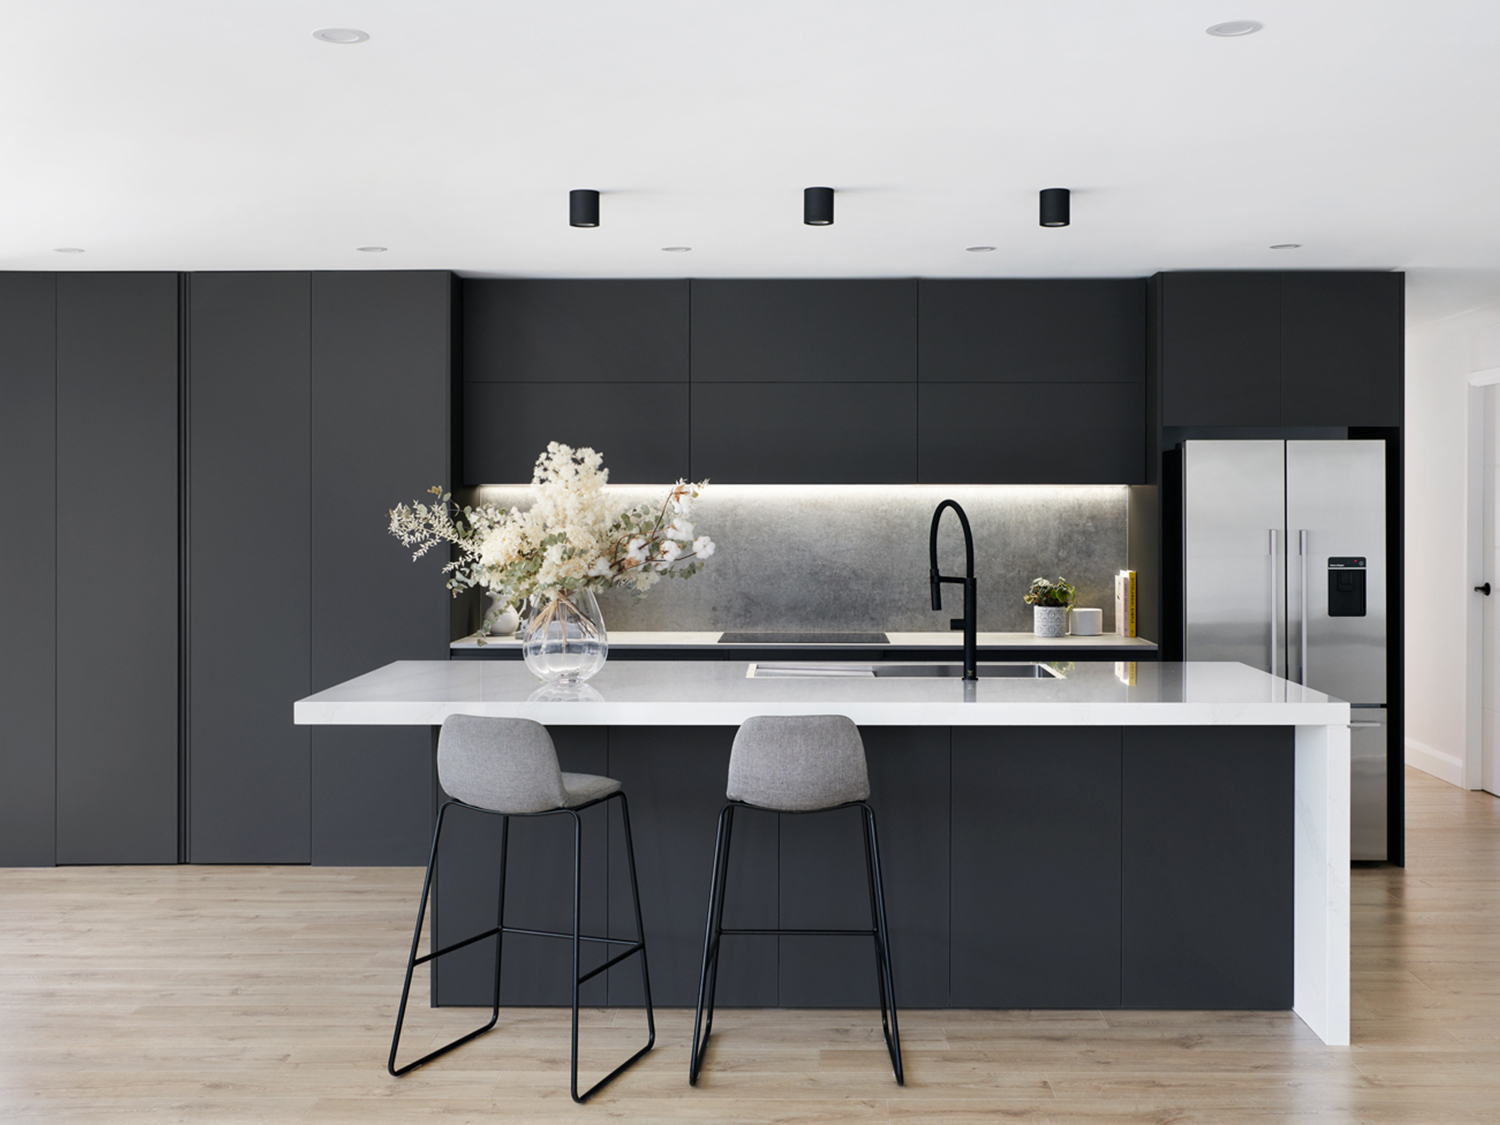 Cosentino Tips-for-Designing-a-Modern-Kitchen 1